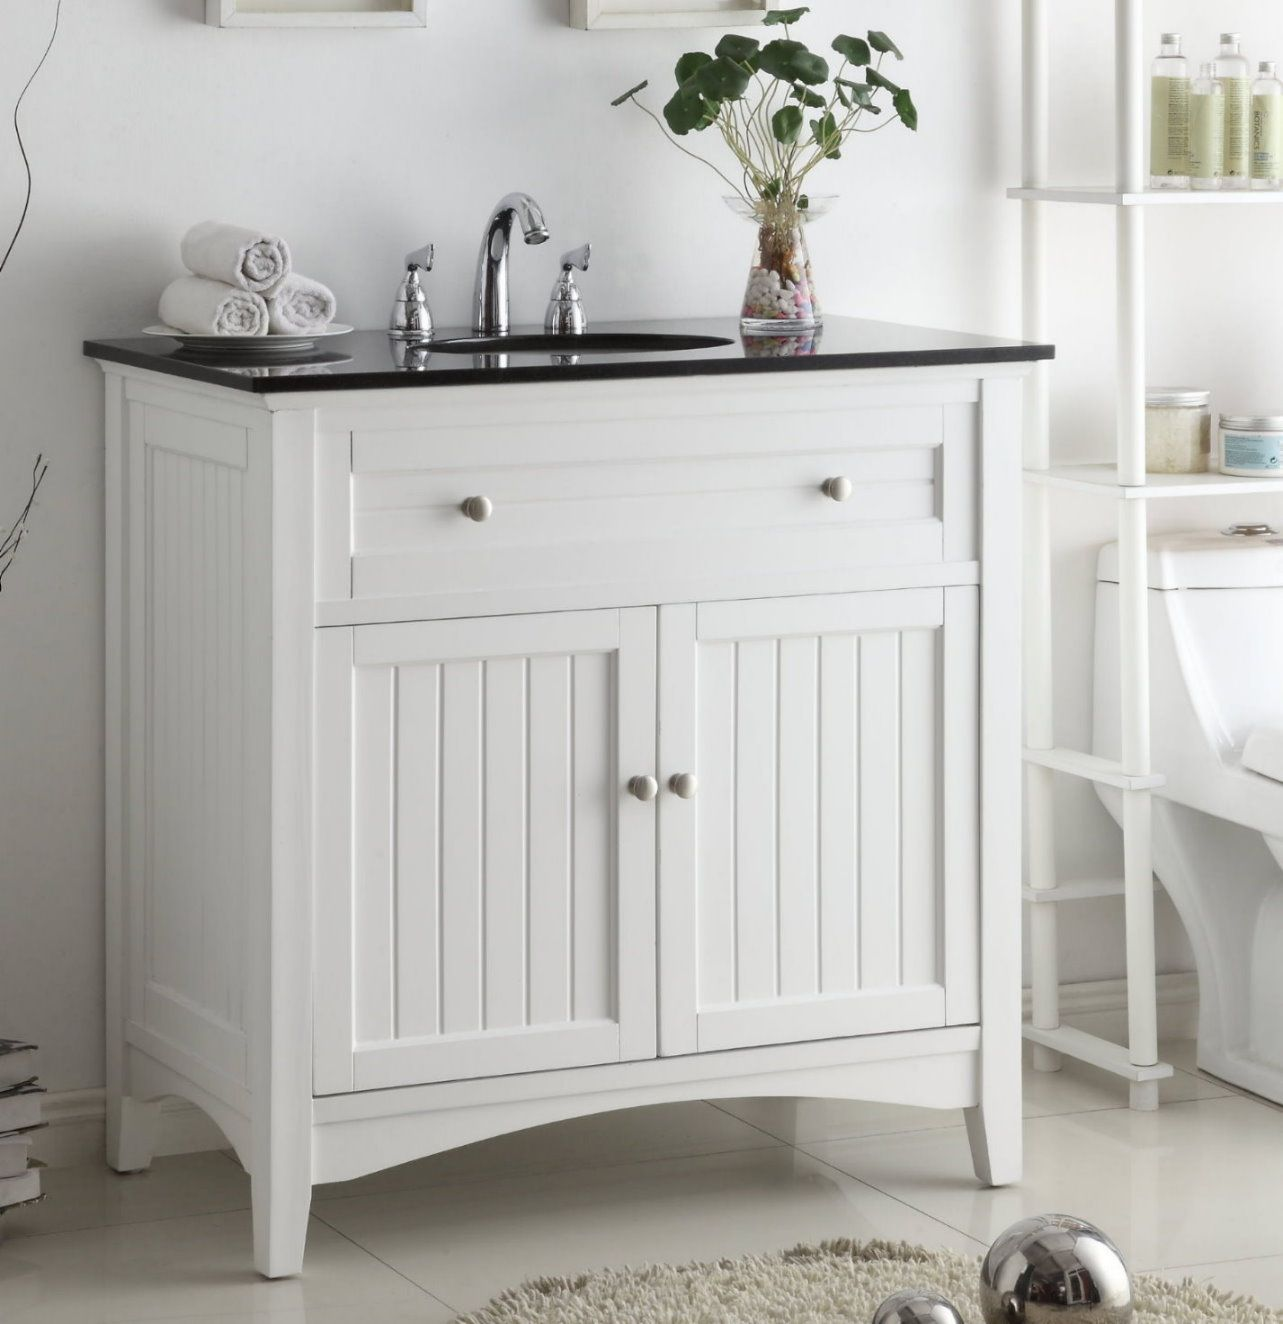 Awesome Picture Of Popular White Farmhouse Bathroom Vanities Ideas Popular White Farmh Farmhouse Bathroom Vanity Cottage Style Bathrooms White Vanity Bathroom